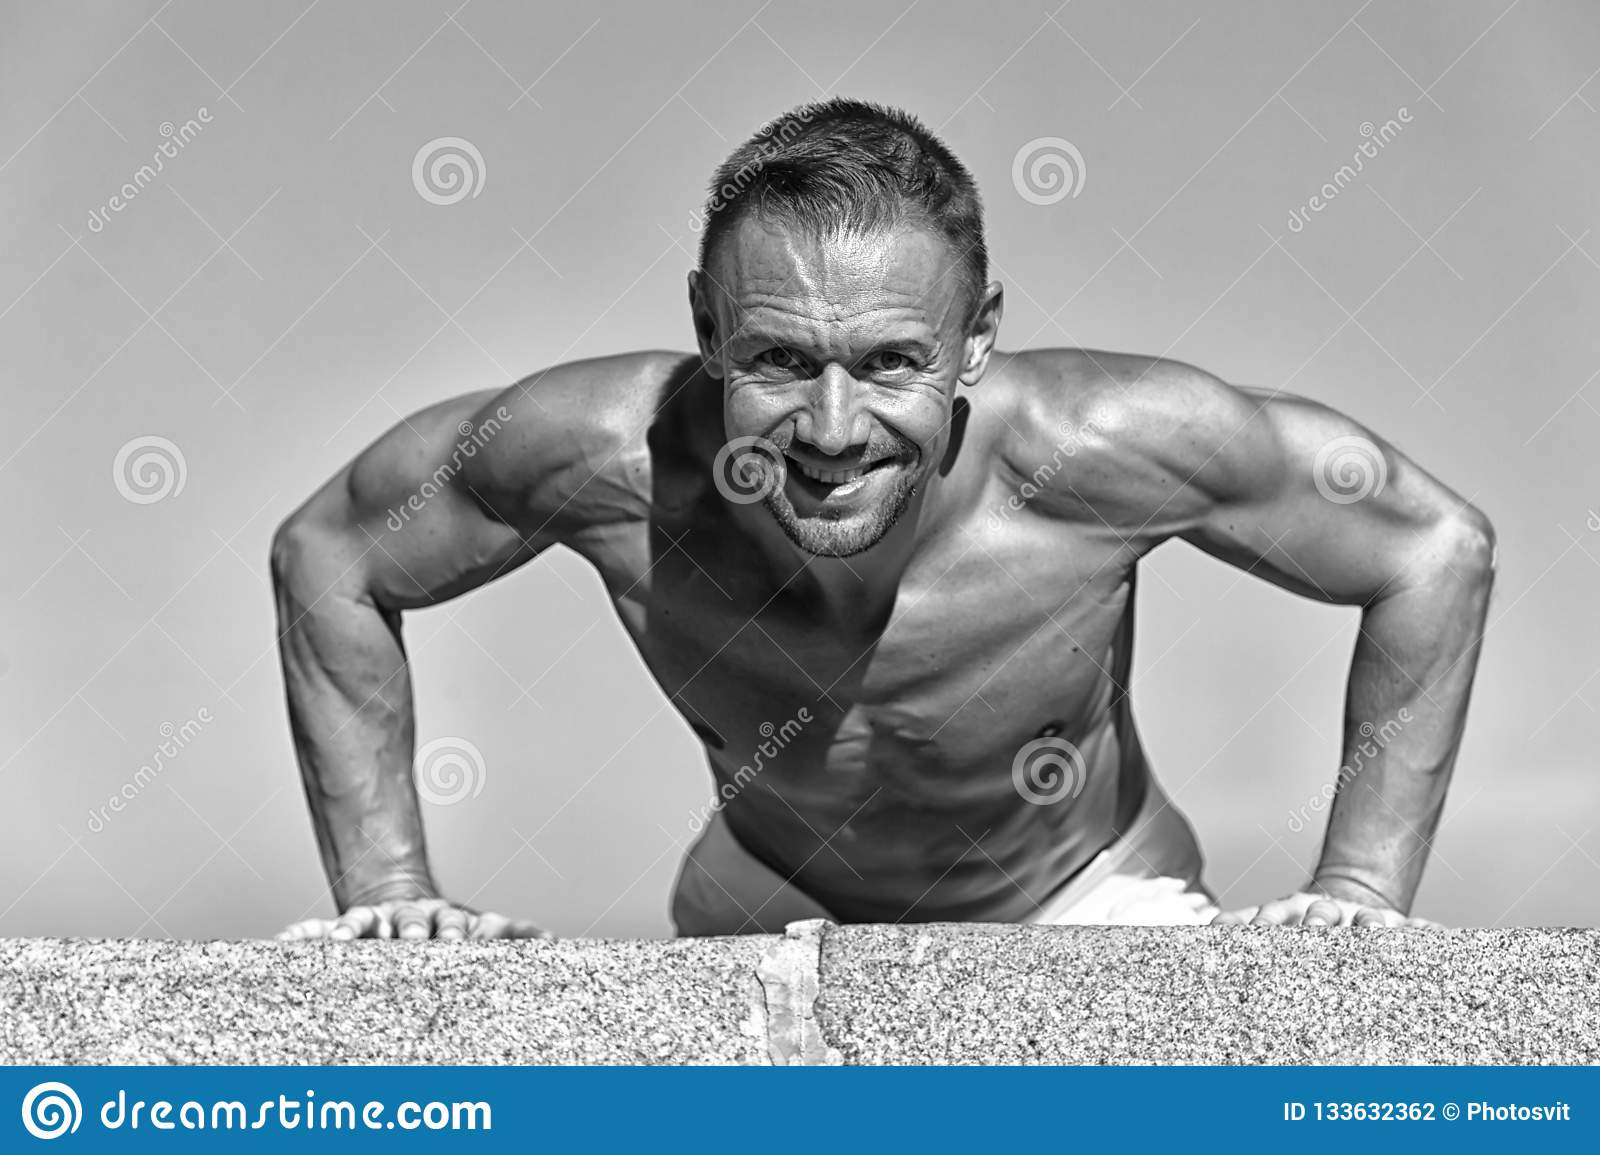 Daily Exercise Concept  Push Ups Challenge  Man Motivated